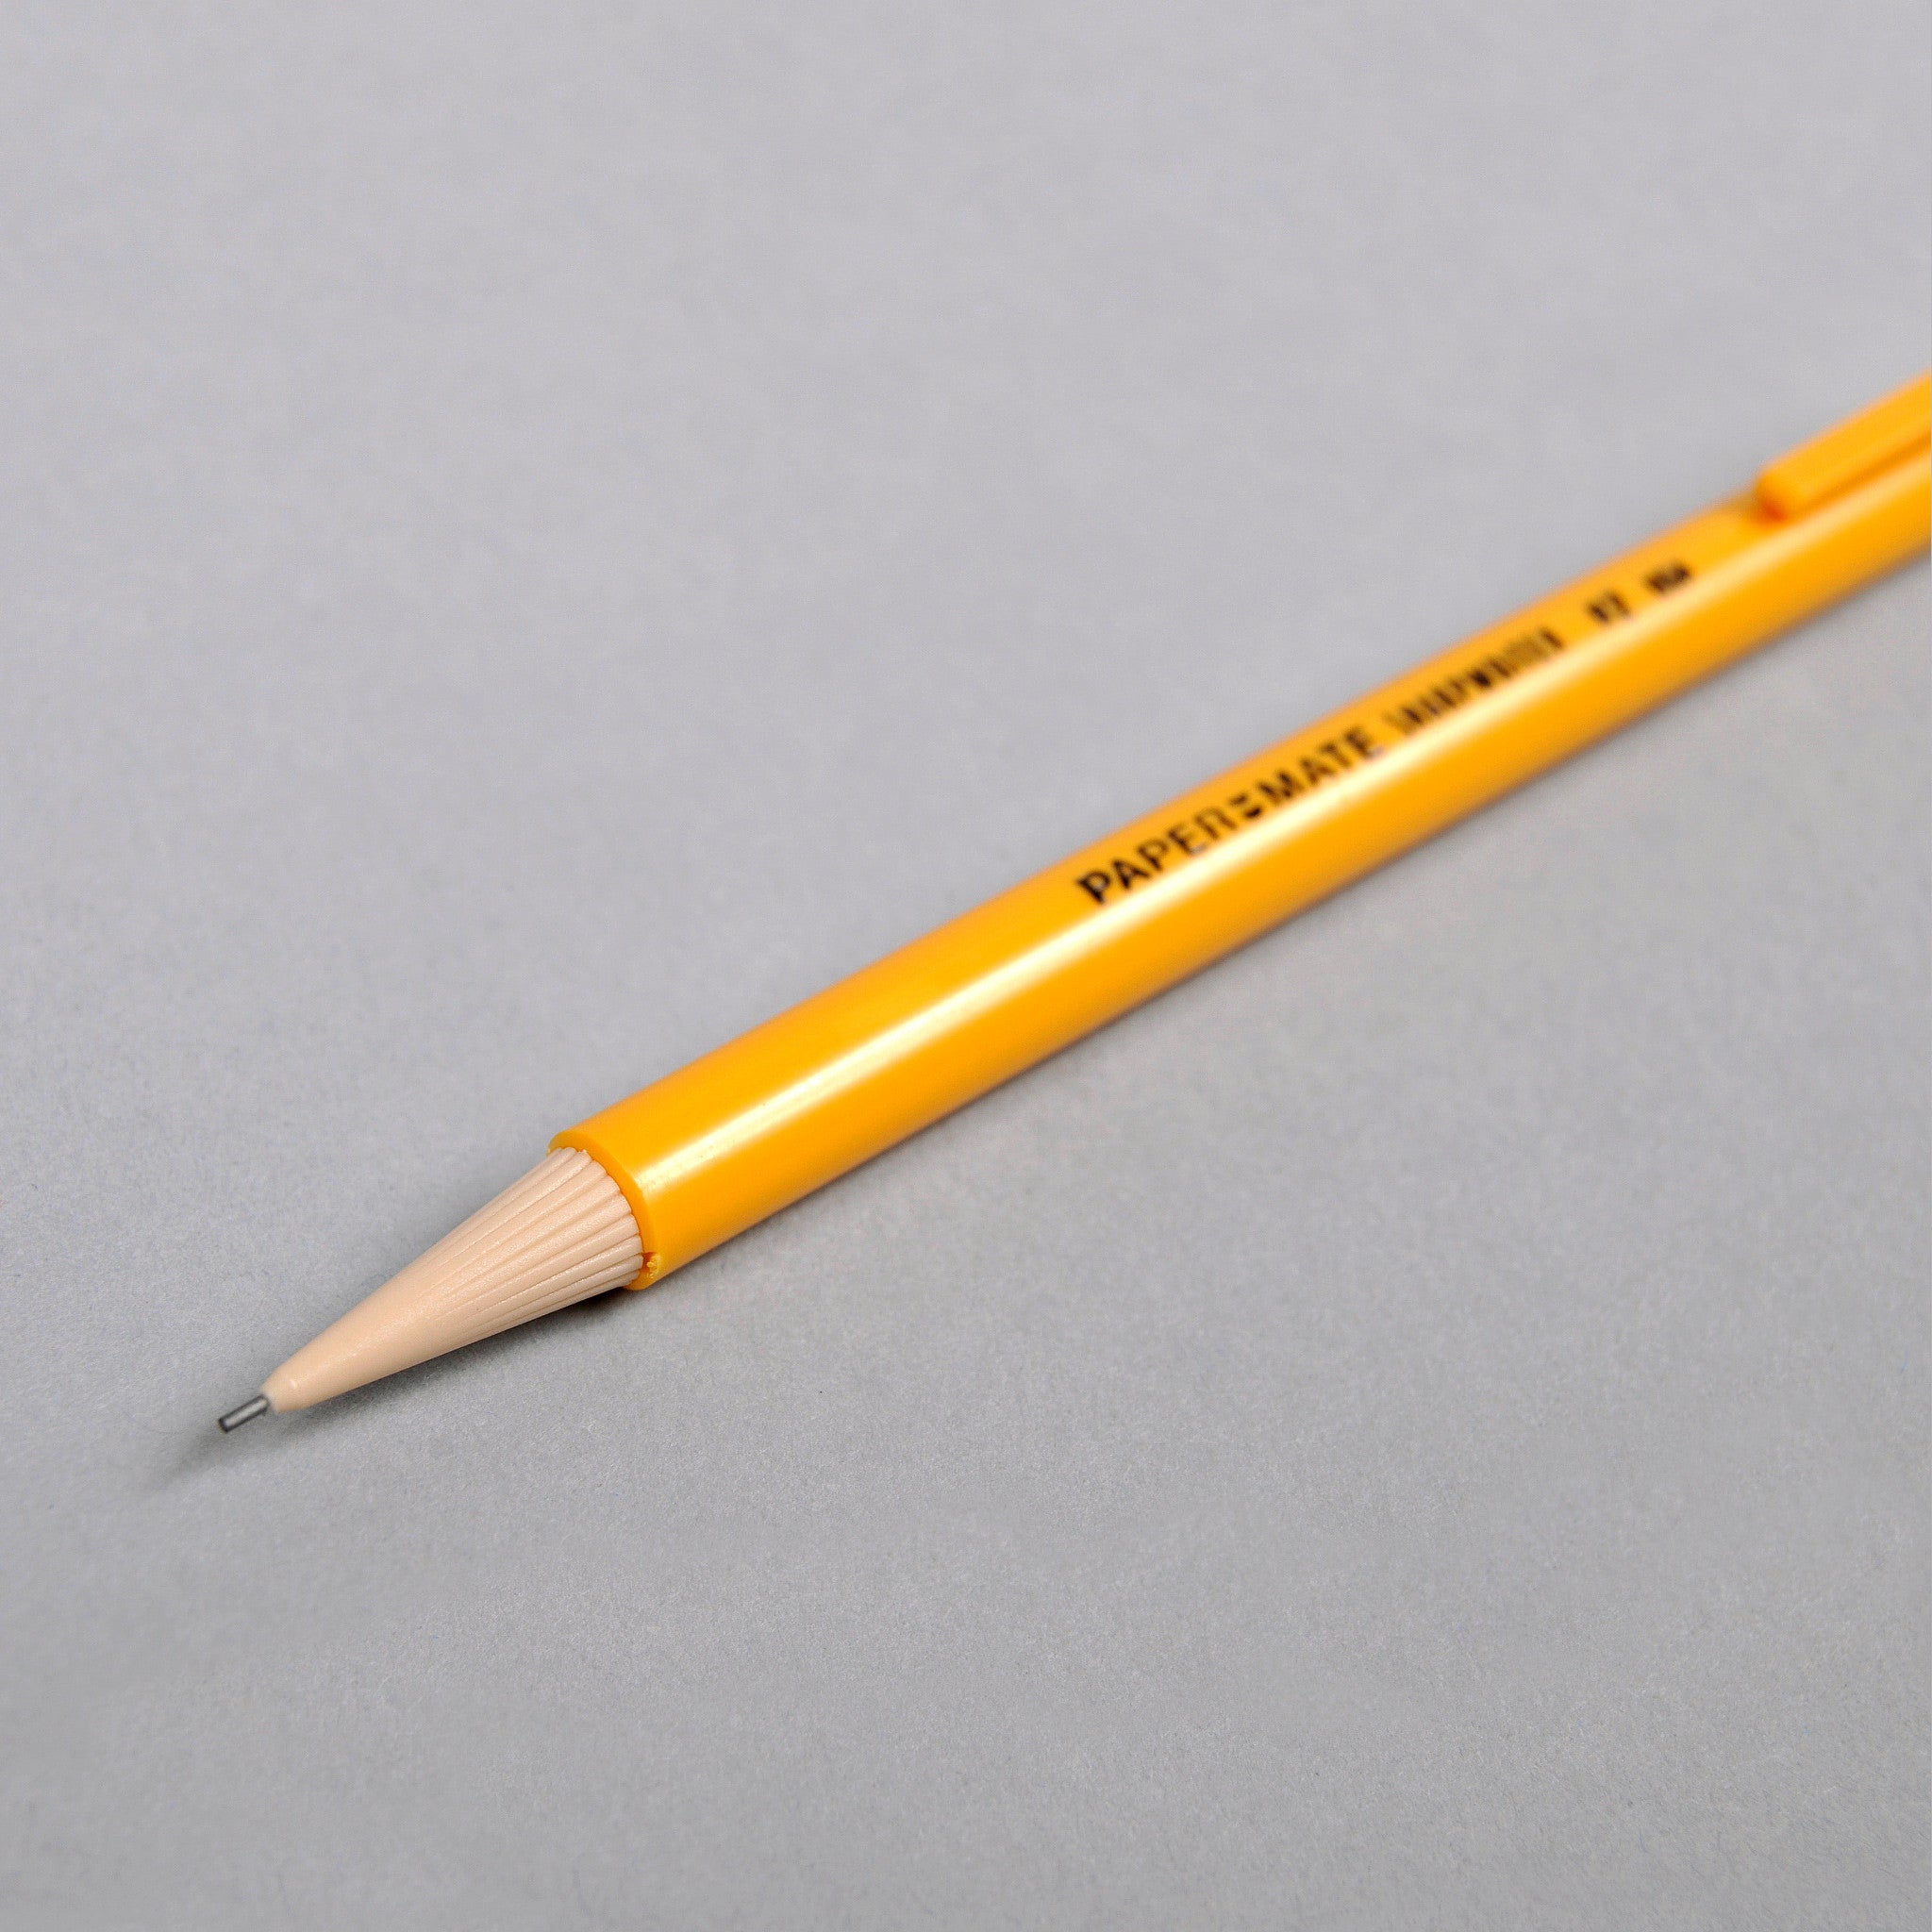 Paper Mate - Sharpwriter Mechanical Pencil - image 1